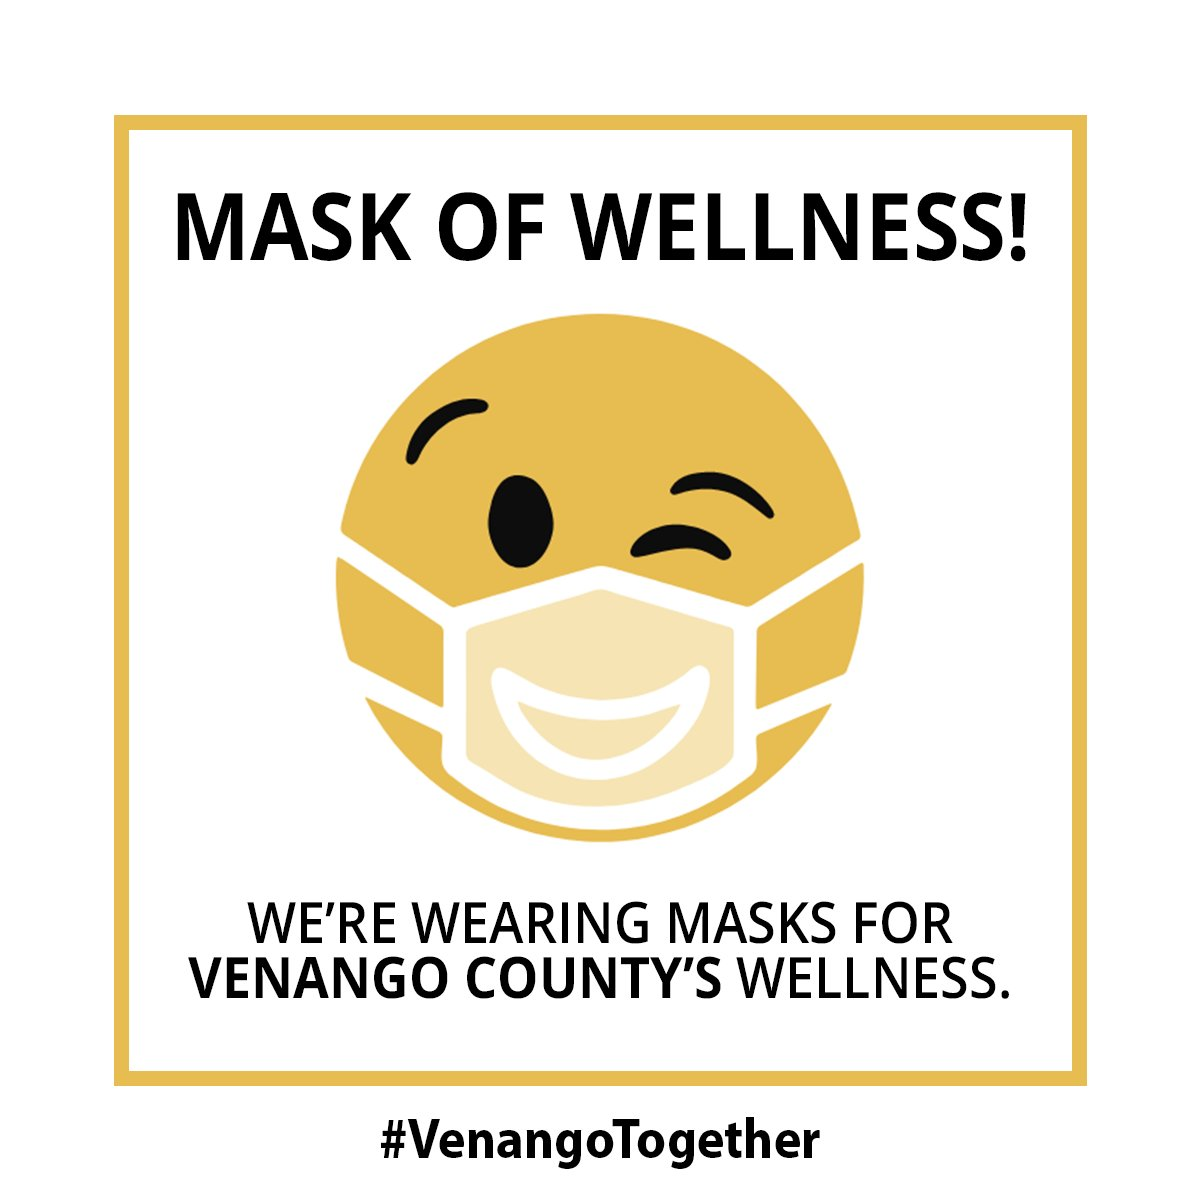 The #MaskofWellness campaign in #VenangoCounty promotes a positive approach of responsible behavior, encouraging wellness and economic stability. Local success relies on local support to stop the spread of COVID-19. To learn more-  #MasksOn #VenangoTogether